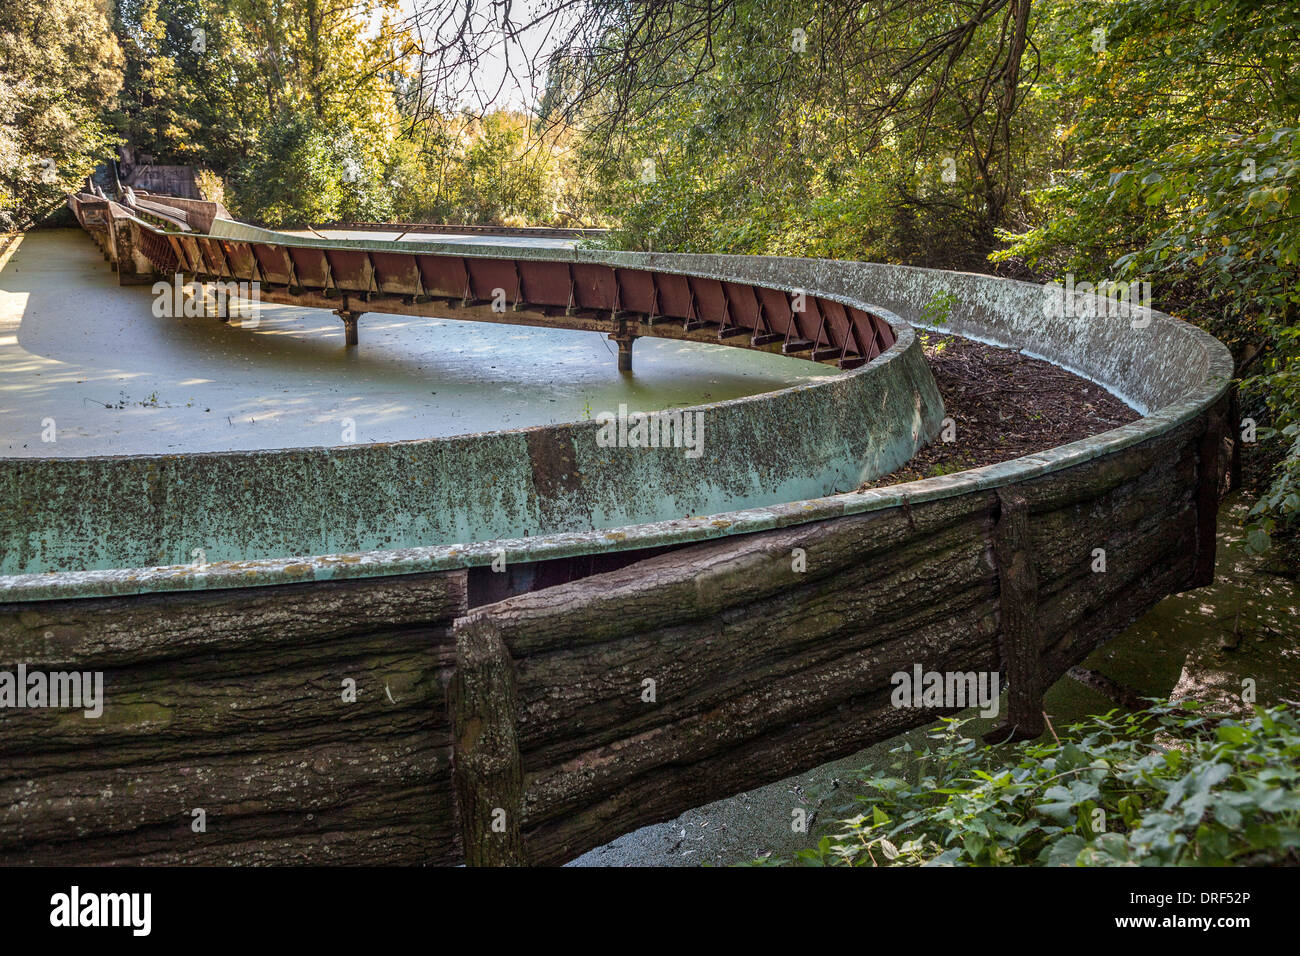 Empty, dirty canal of fun ride over dirty, murky pond at, derelict, disused amusement park - Spreepark, Planterwald, Berlin - Stock Image